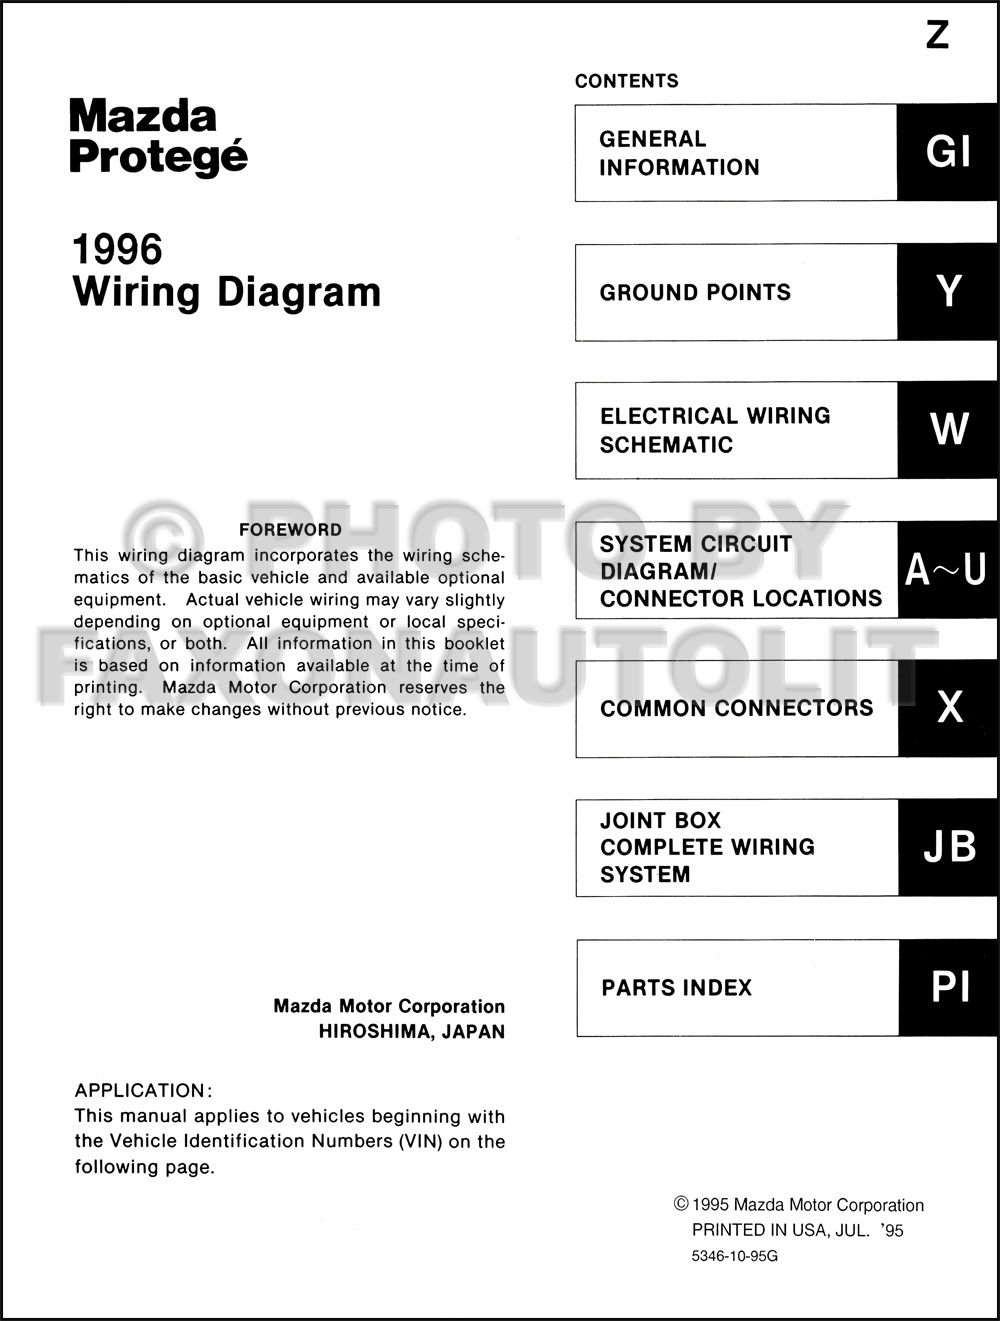 Diagram 200mazda Protege Wiring Diagram Manual Original Full Version Hd Quality Manual Original Pvdiagramrasty Stuzzicalibro It